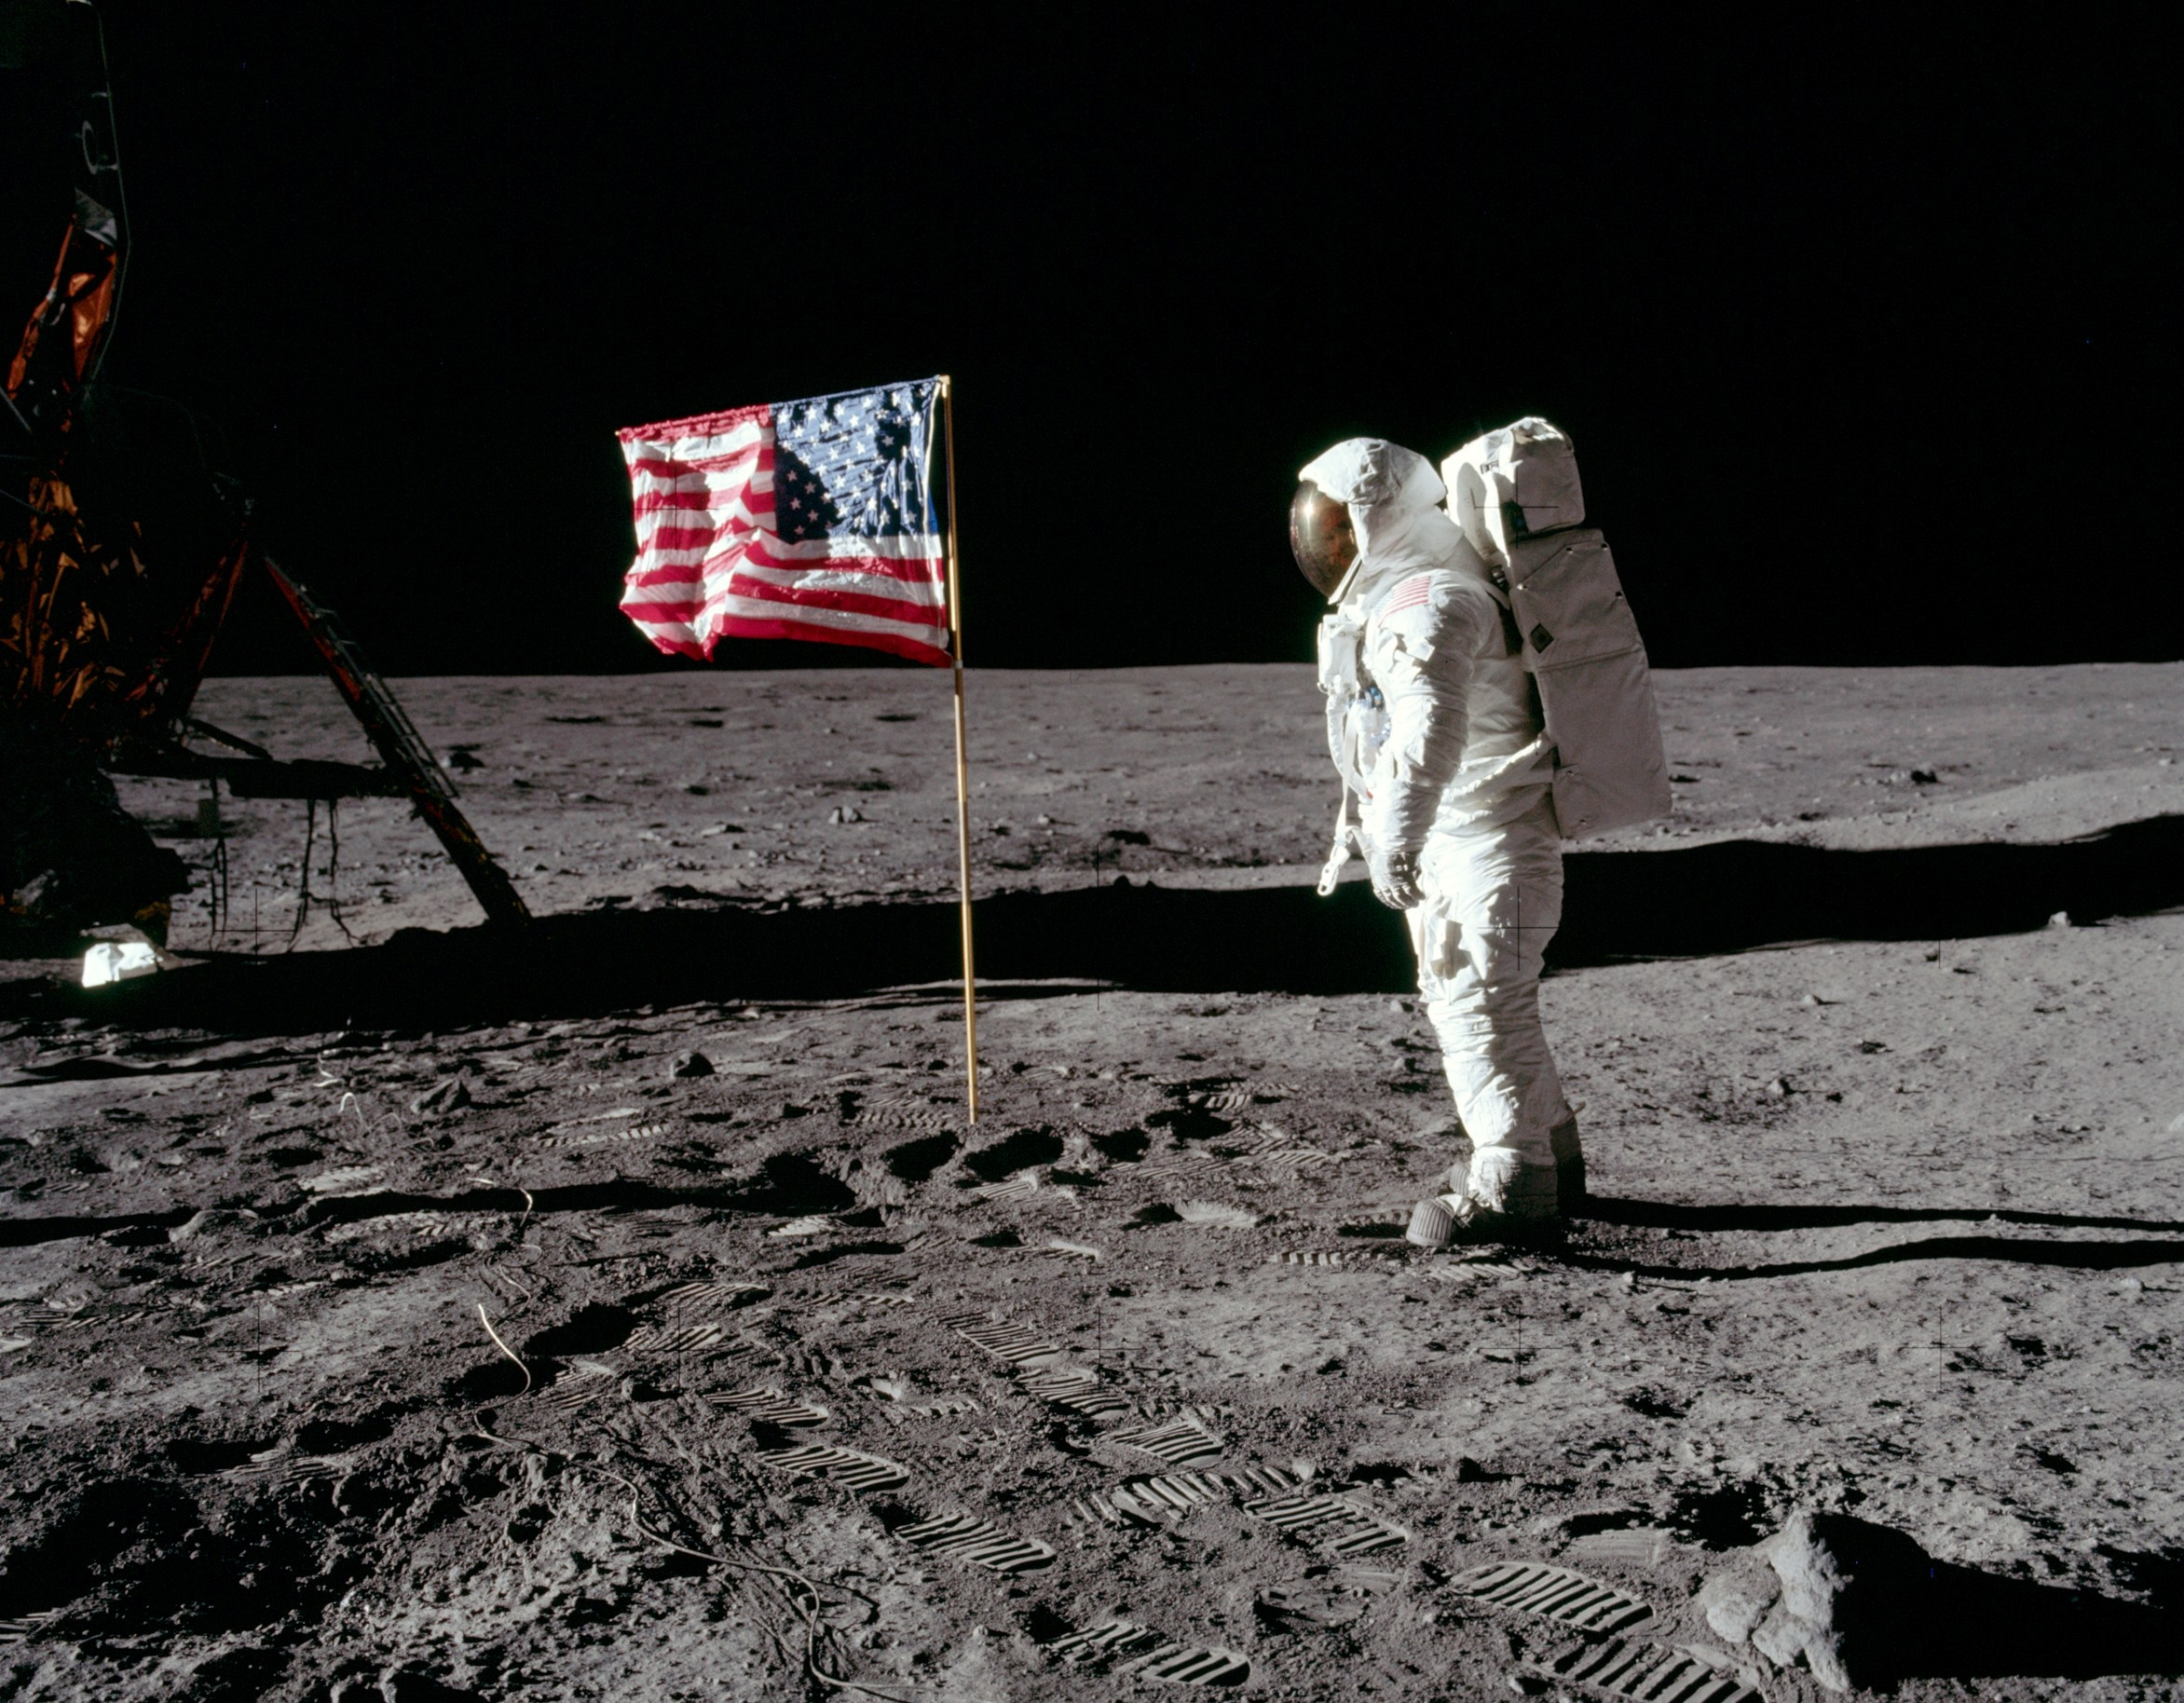 apollo 11 moon mission - photo #1